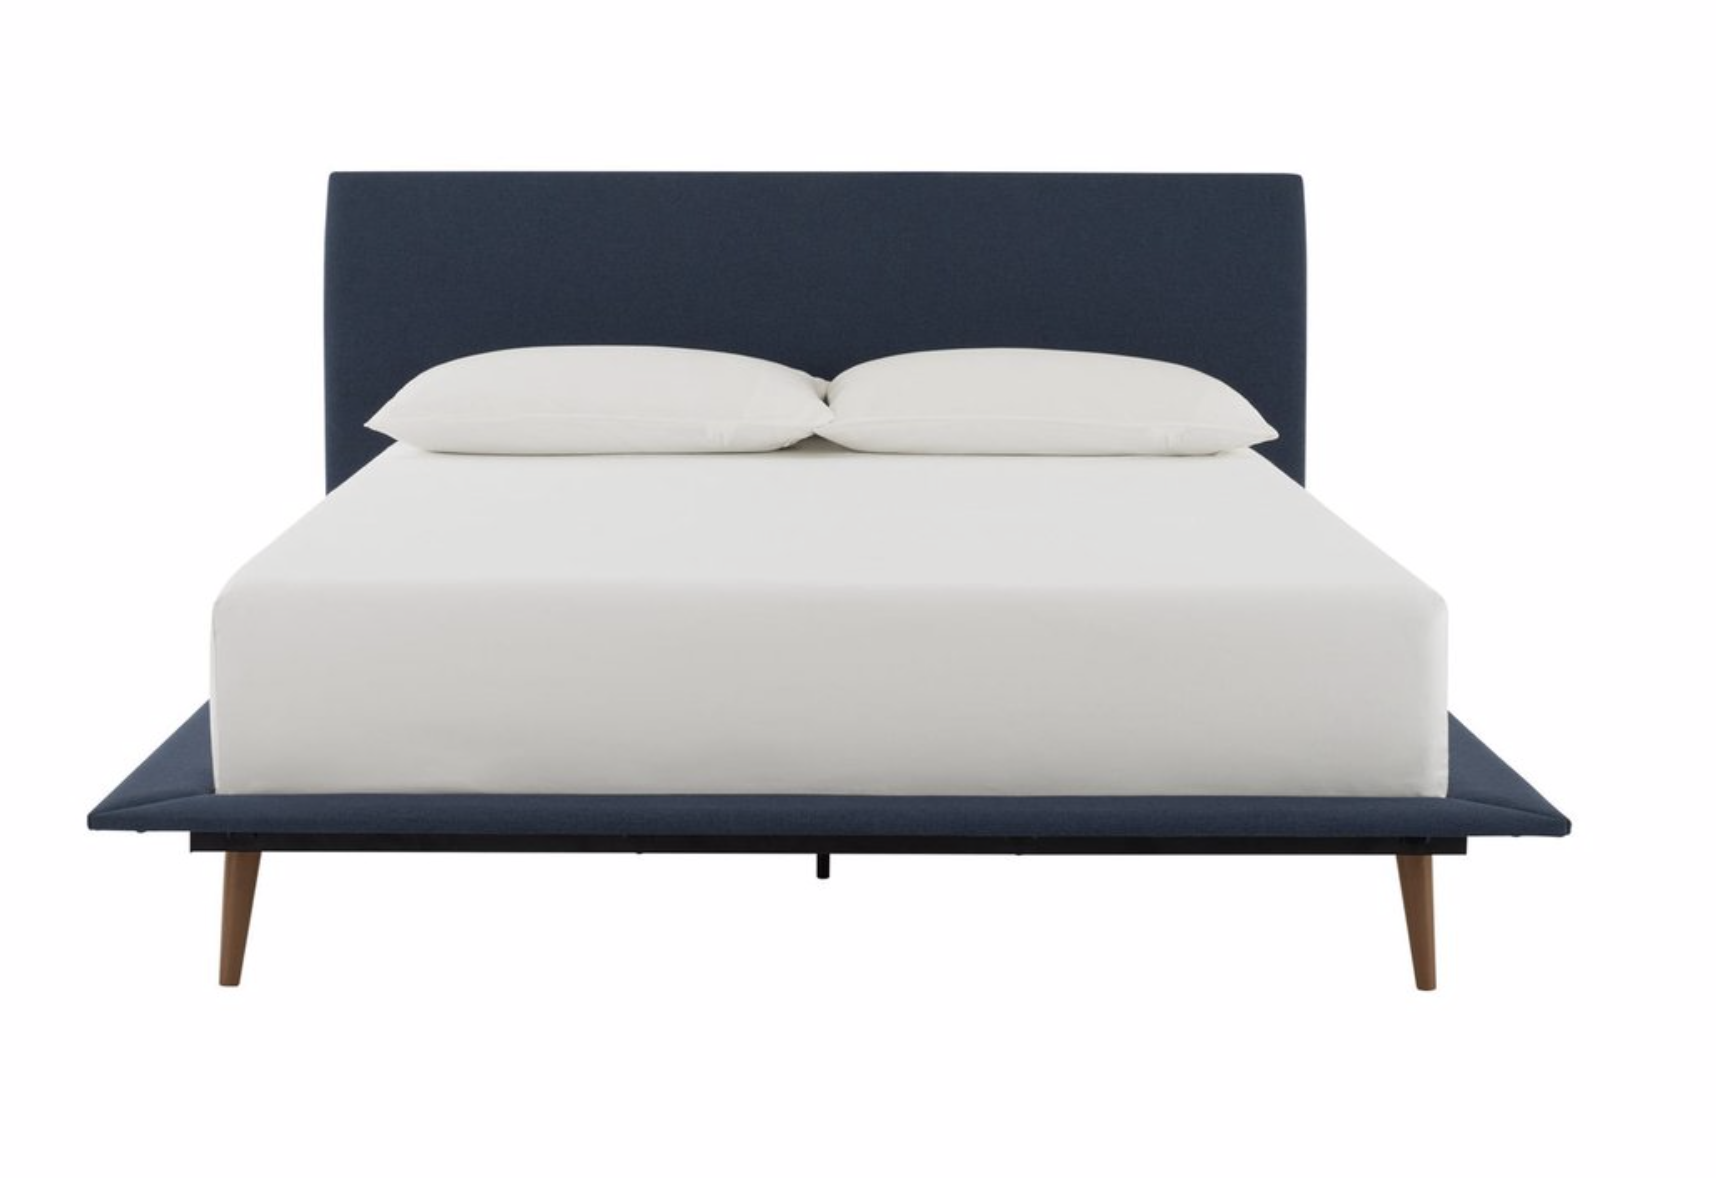 This bed is a steal at only $342 for a Queen! It's modern, sleek, and cool, and would update a room instantly.